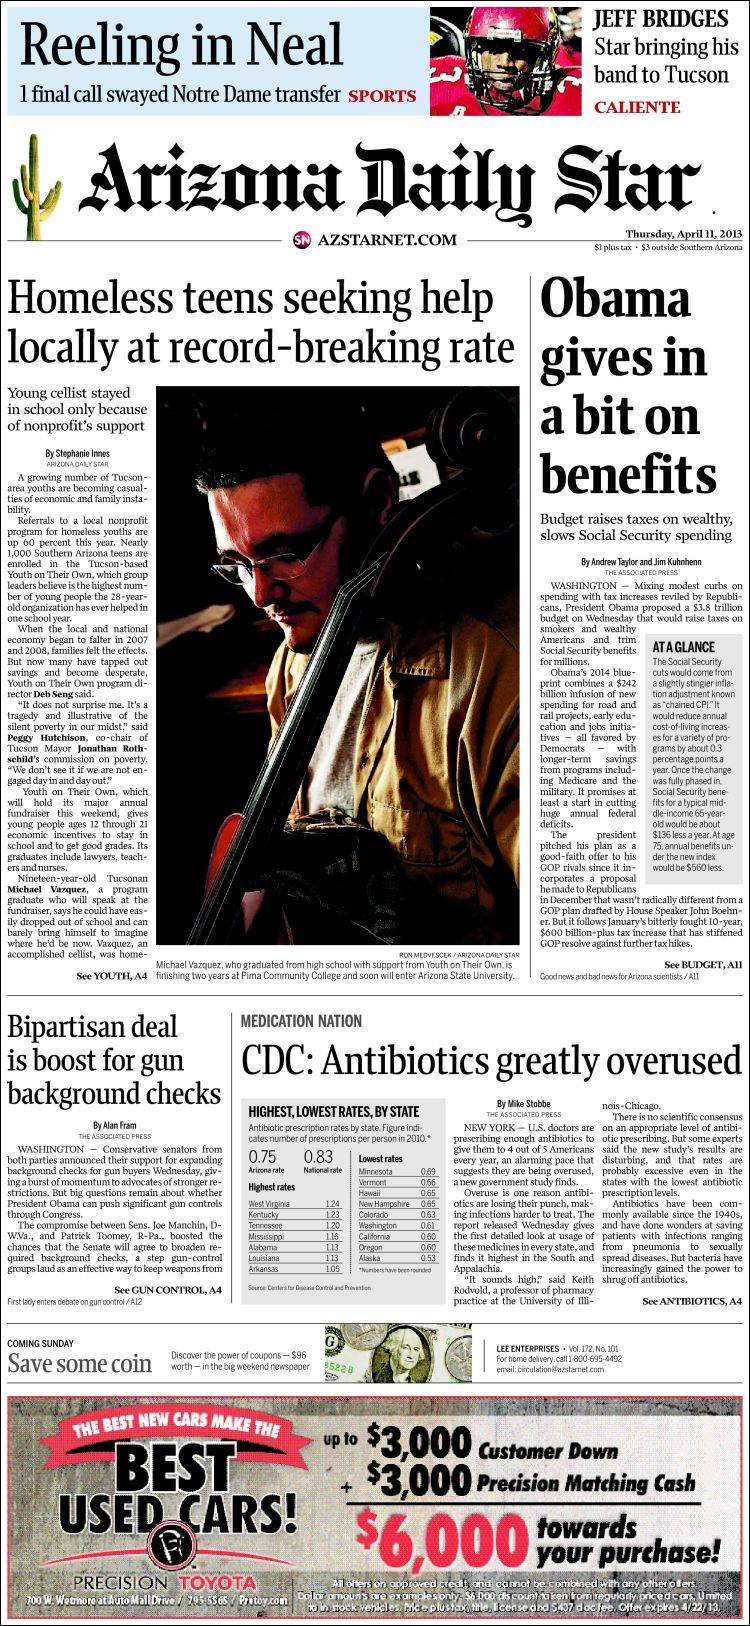 Arizona_daily_star-2013-04-11